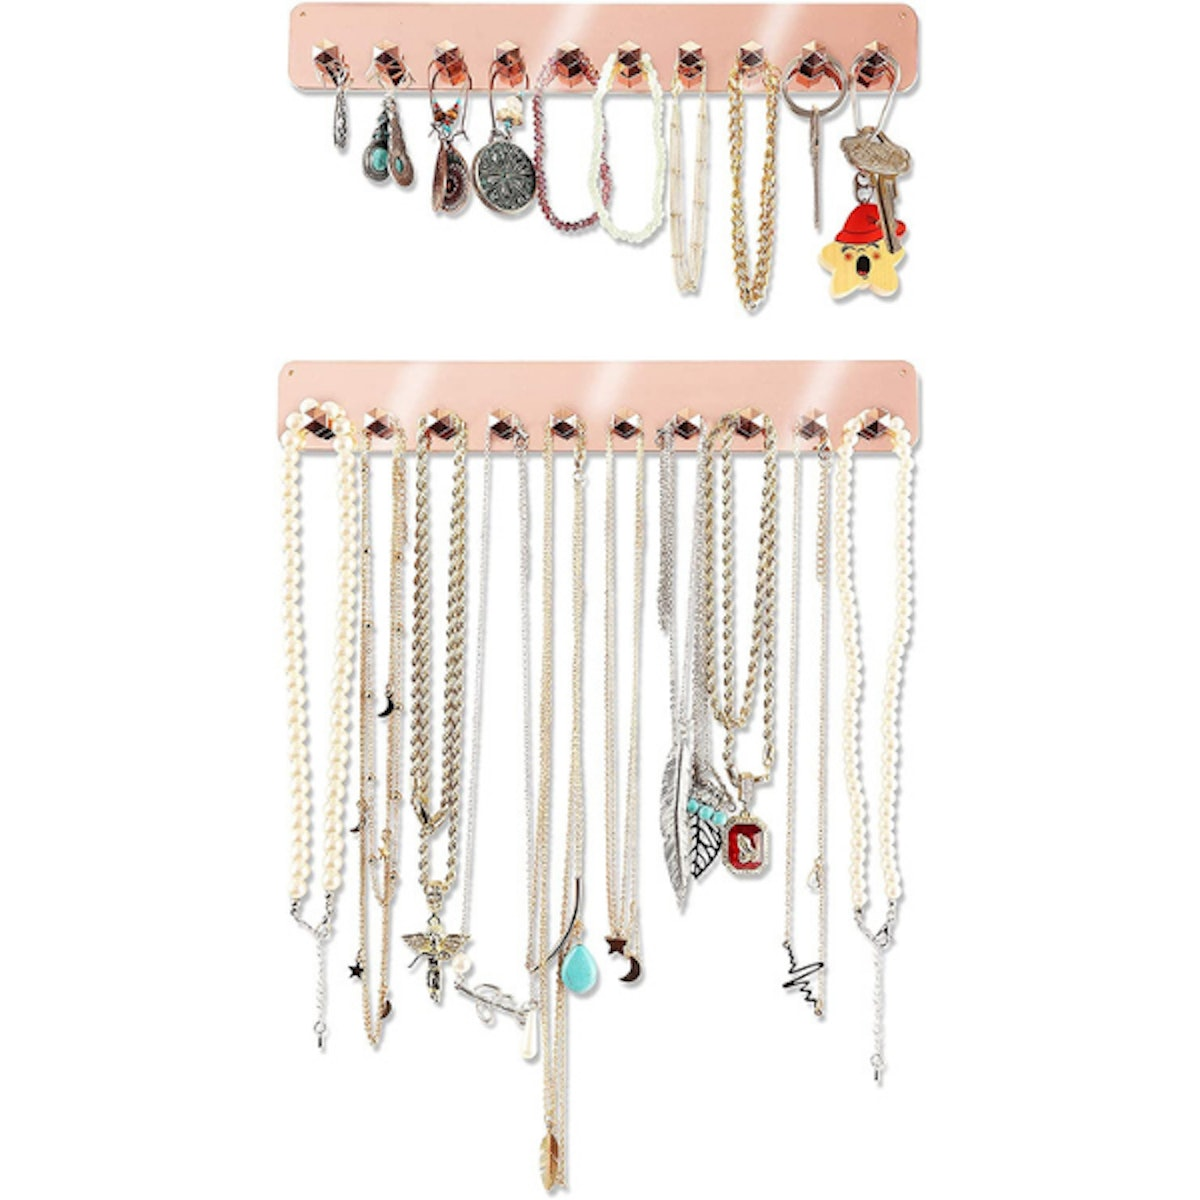 Boxy Concepts Necklace Organizer (2 Pack)